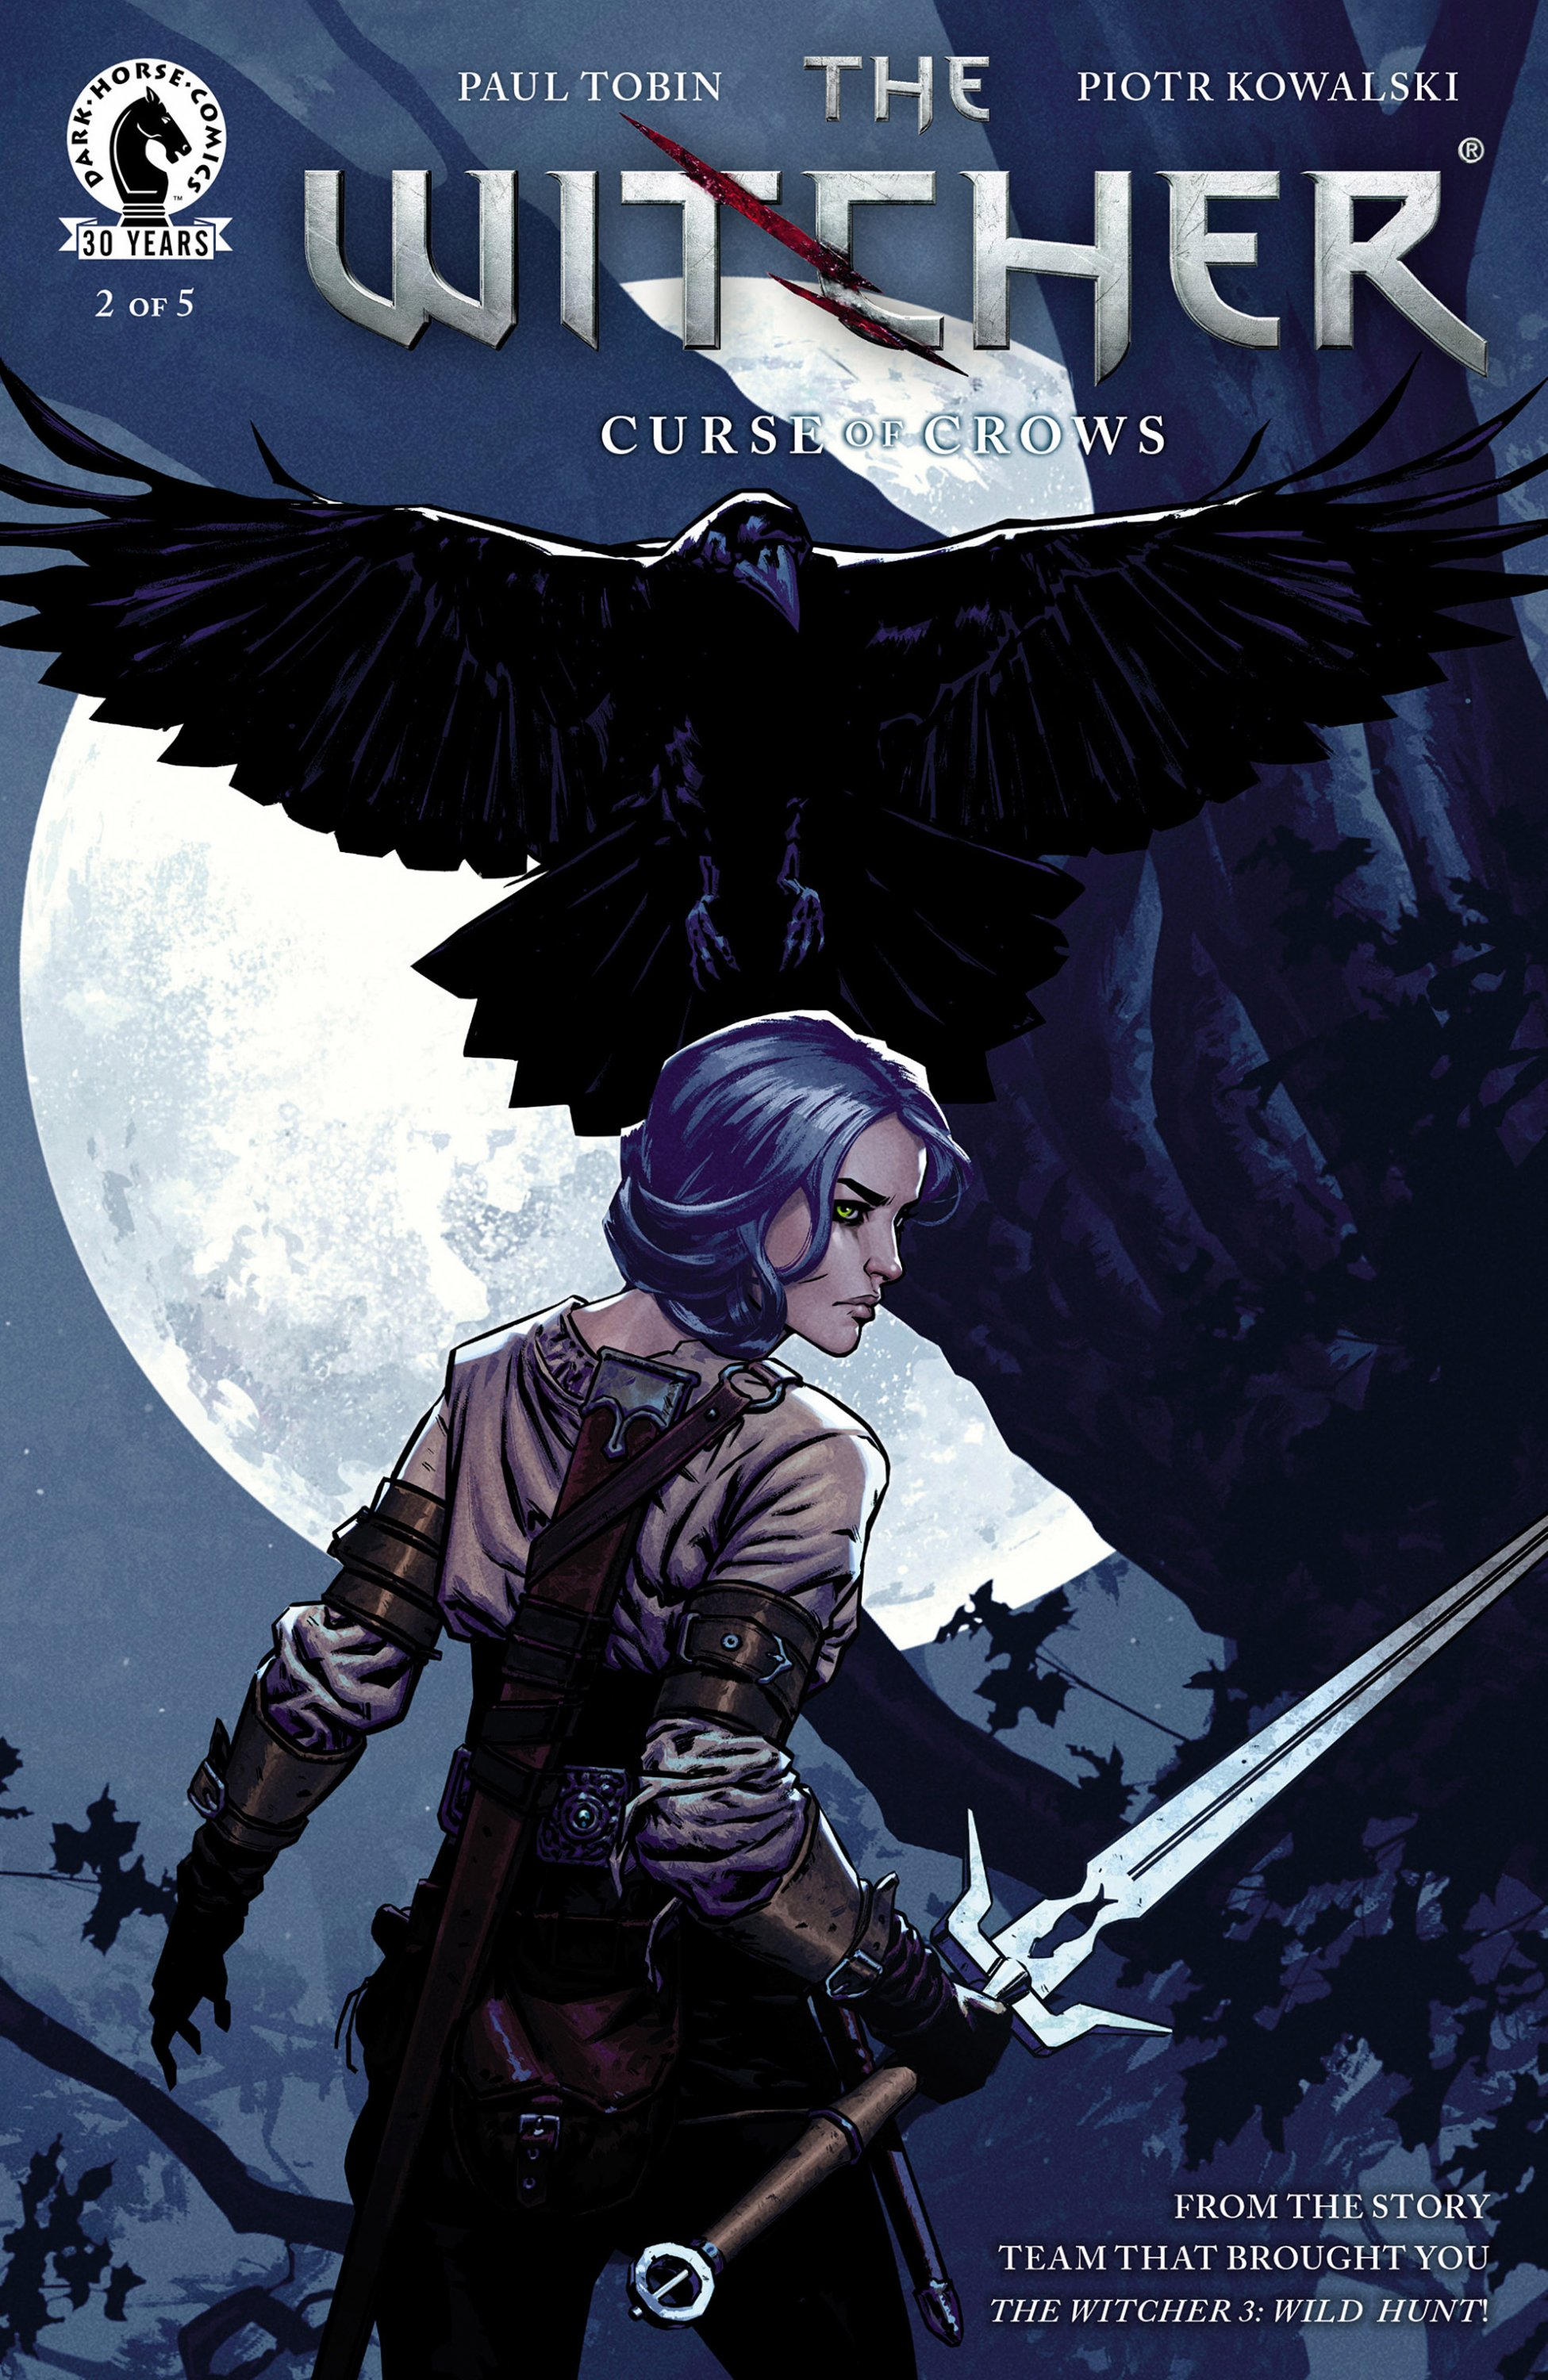 The Witcher - Curse of Crows 002 (October 2016)